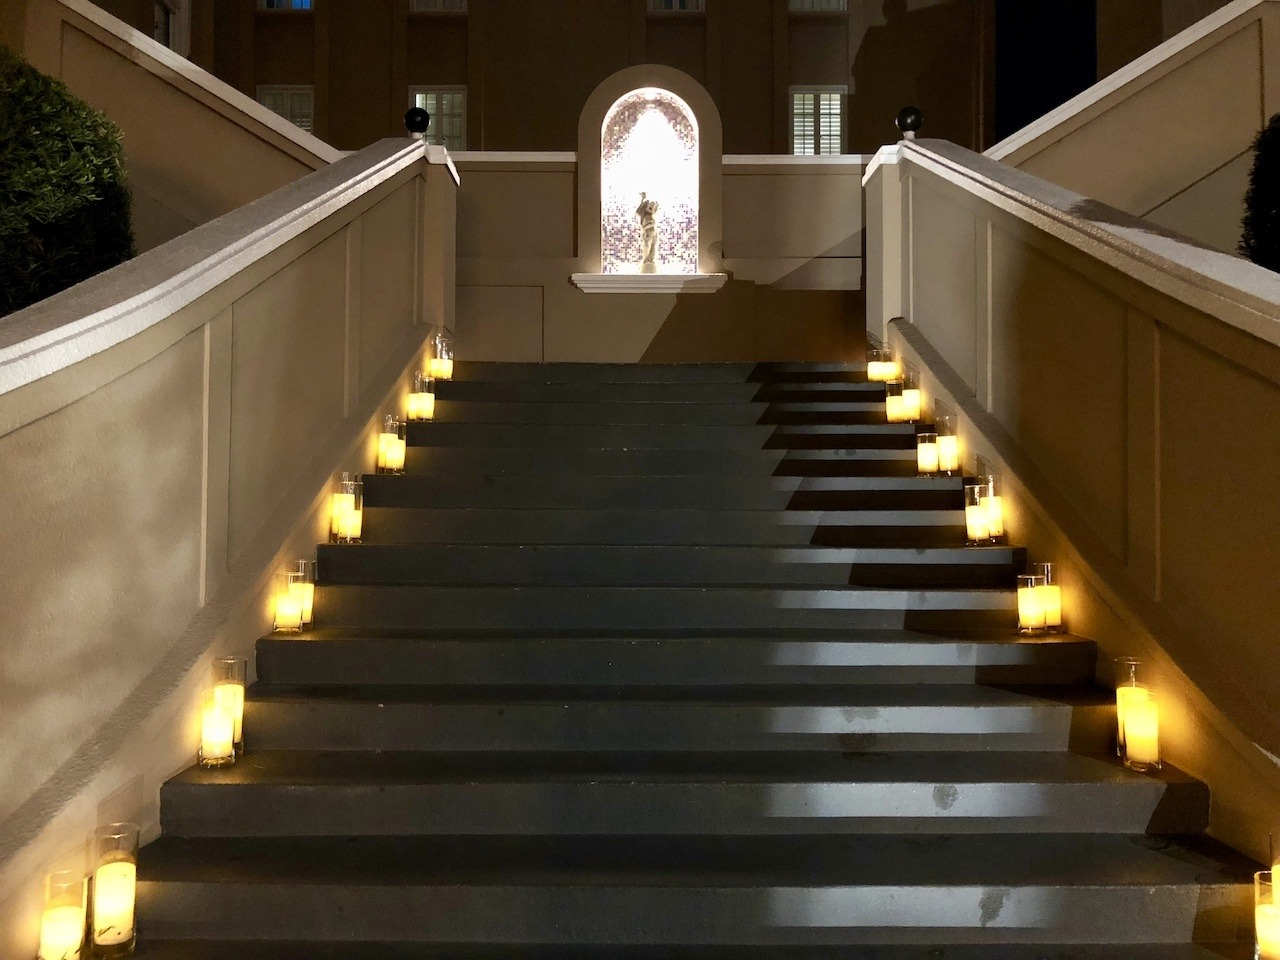 Stairs leading to guest rooms